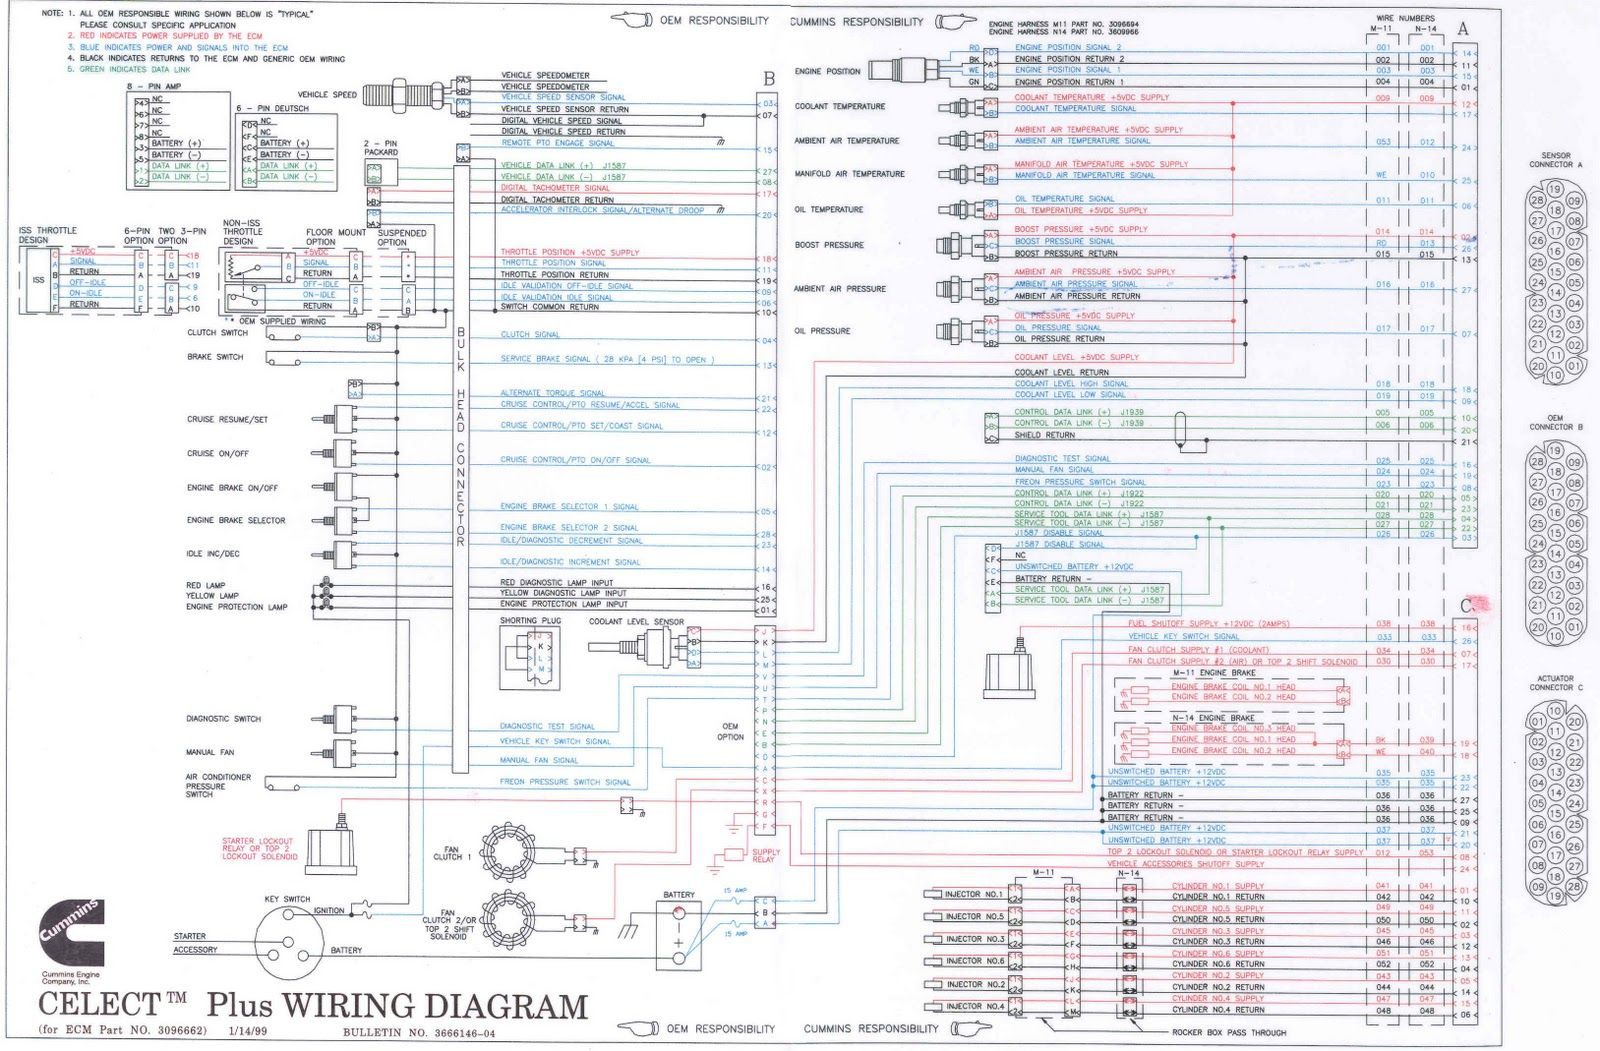 Beautiful N14 Celect Ecm Wiring Diagram Pictures Inspiration And Cummins Cummins Diagrama De Instalacion Electrica Diagrama De Circuito Electrico